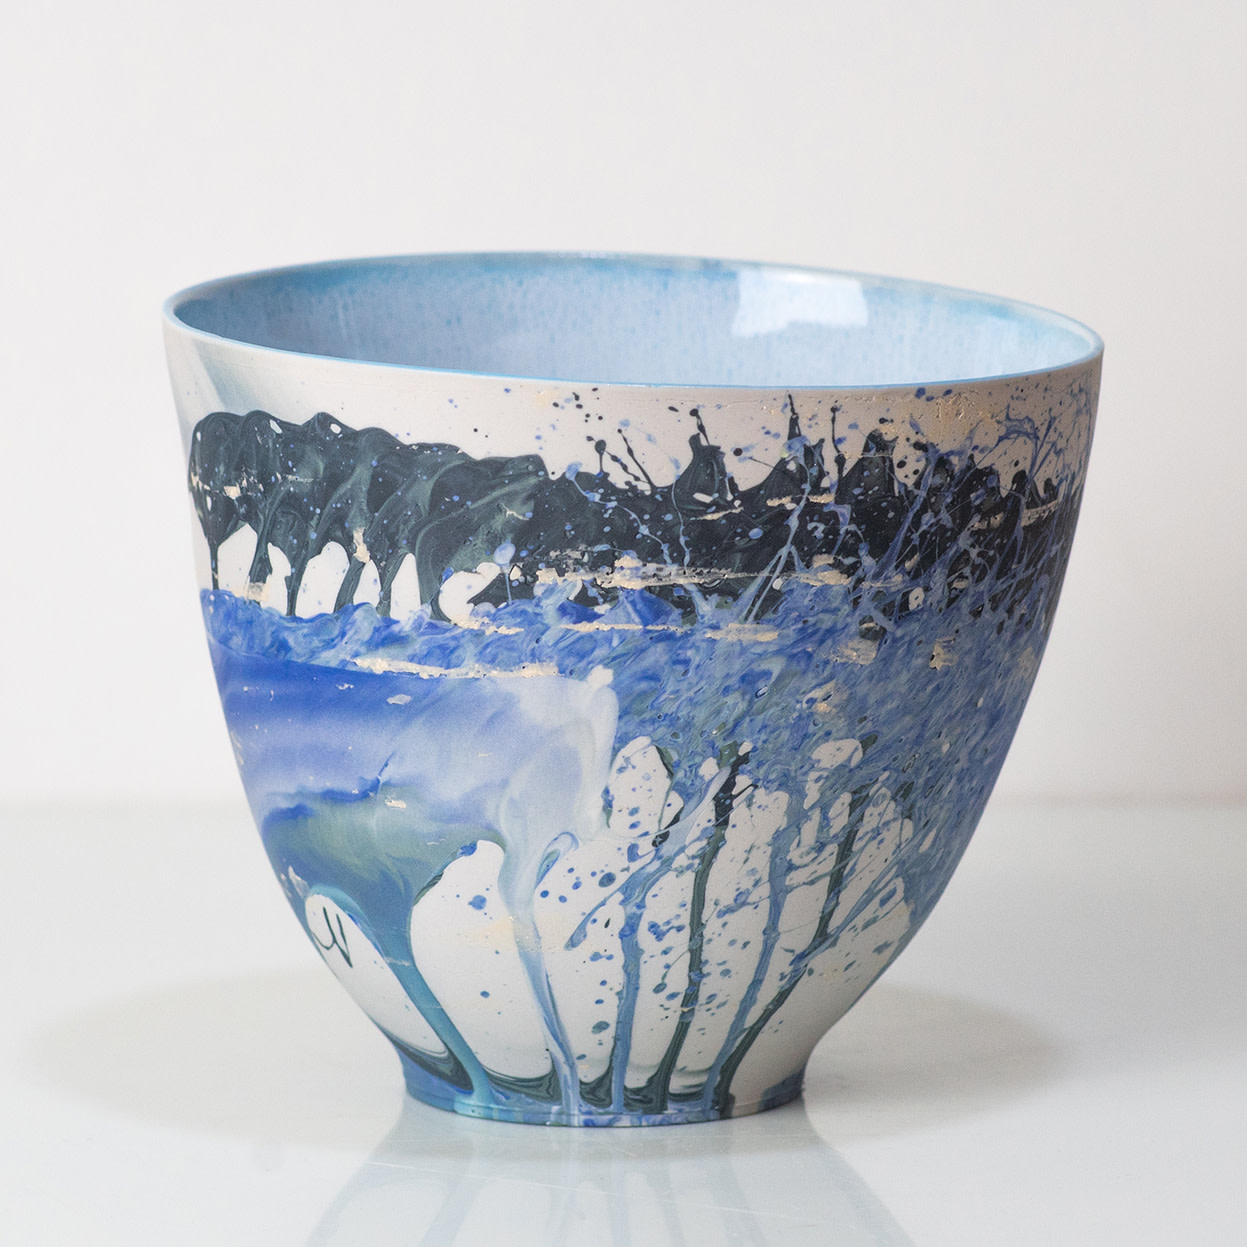 <span class=&#34;link fancybox-details-link&#34;><a href=&#34;/artists/219-james-pegg/works/6078-james-pegg-bowl-2019/&#34;>View Detail Page</a></span><div class=&#34;artist&#34;><strong>James Pegg</strong></div> <div class=&#34;title&#34;><em>Bowl</em>, 2019</div> <div class=&#34;medium&#34;>action-cast stained porcelain with glazed interior</div> <div class=&#34;dimensions&#34;>h 13 cm, dia. 15 cm</div><div class=&#34;copyright_line&#34;>OwnArt: £ 14.50 x 10 Months, 0% APR </div>